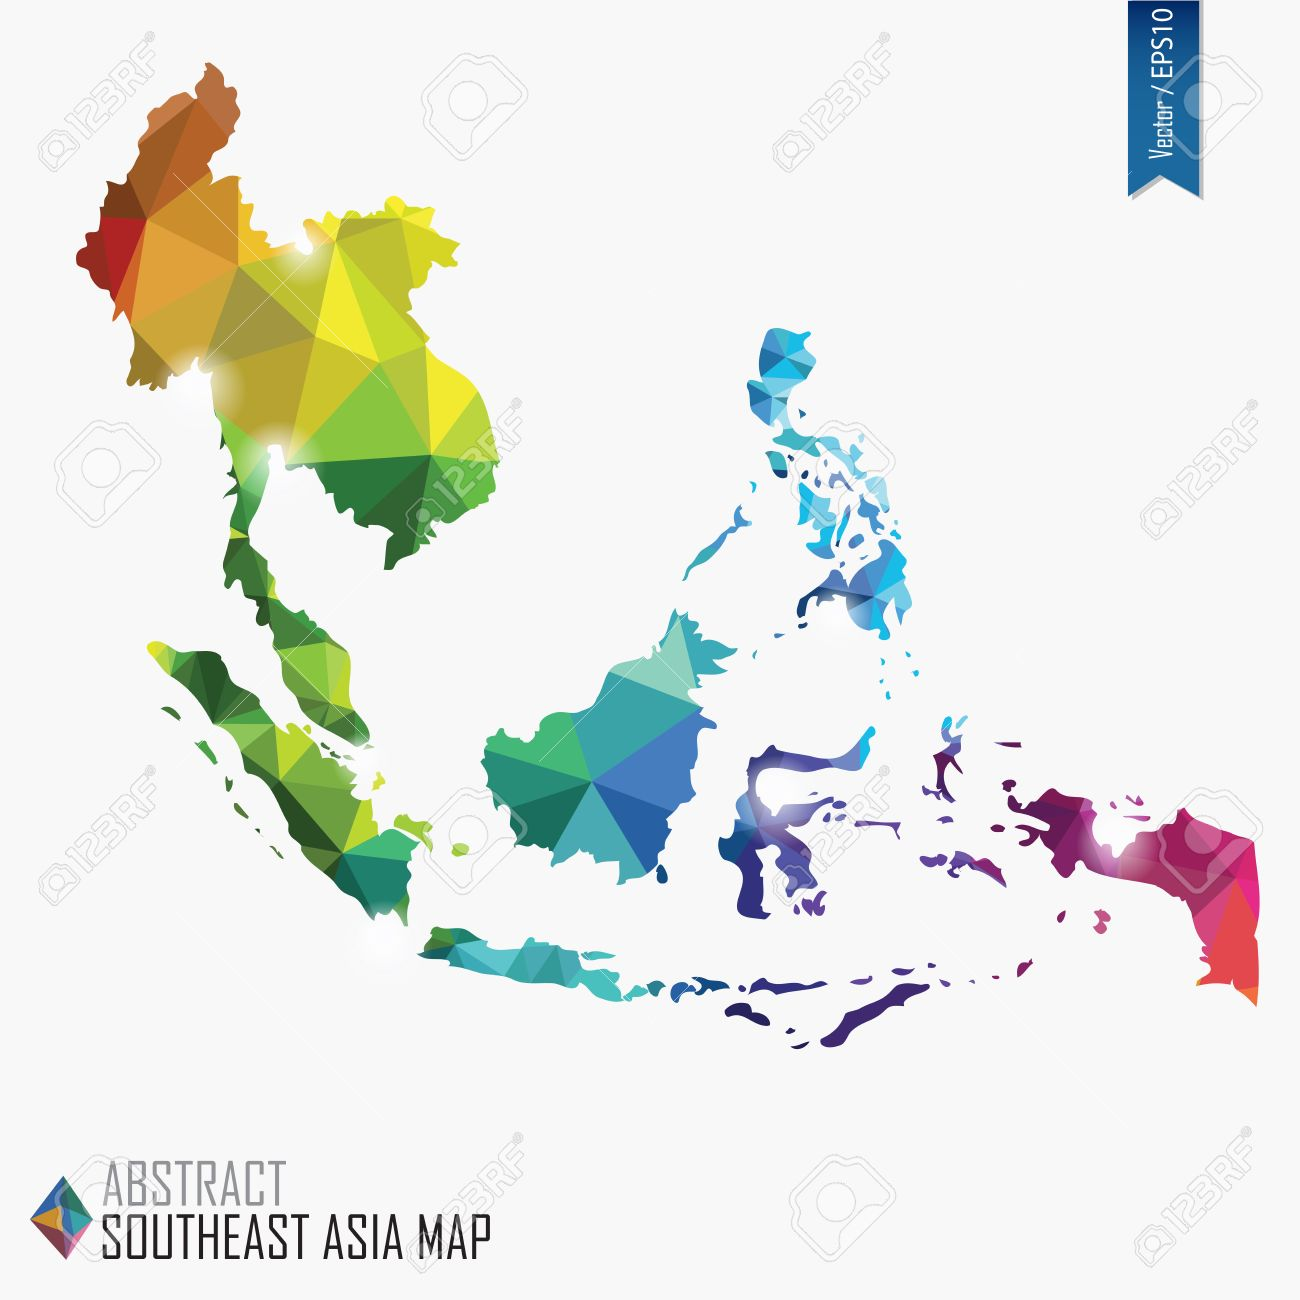 Colorful Abstract Southeast Asia Map Vector Illustration Mesh